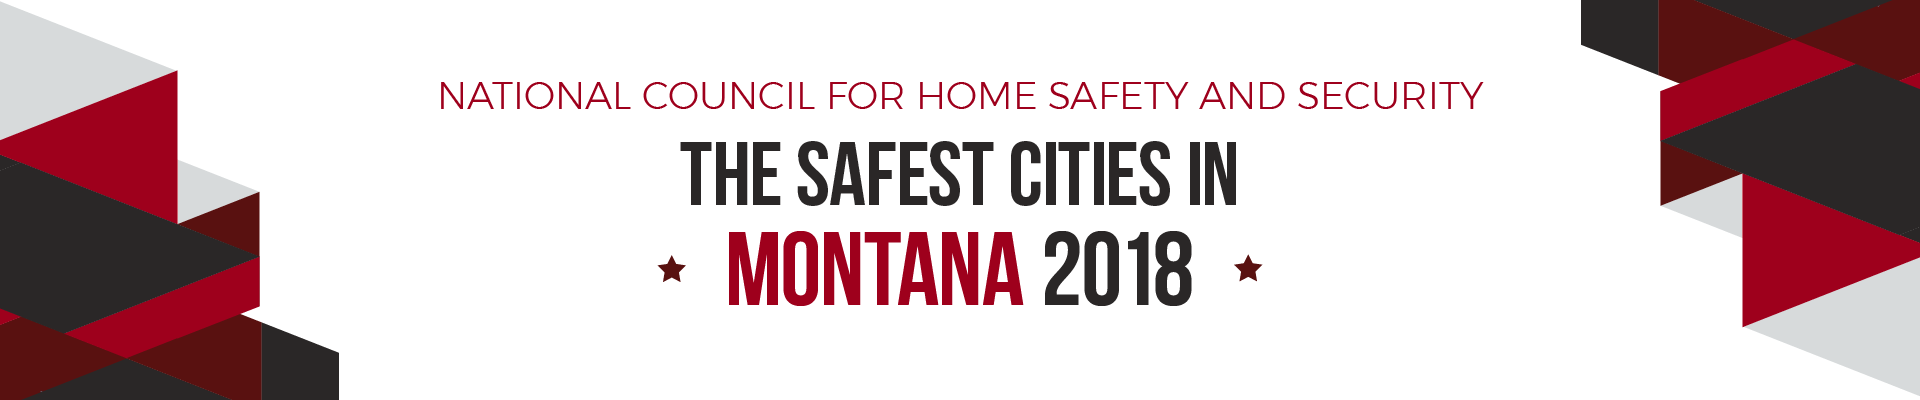 safe cities montana 2018